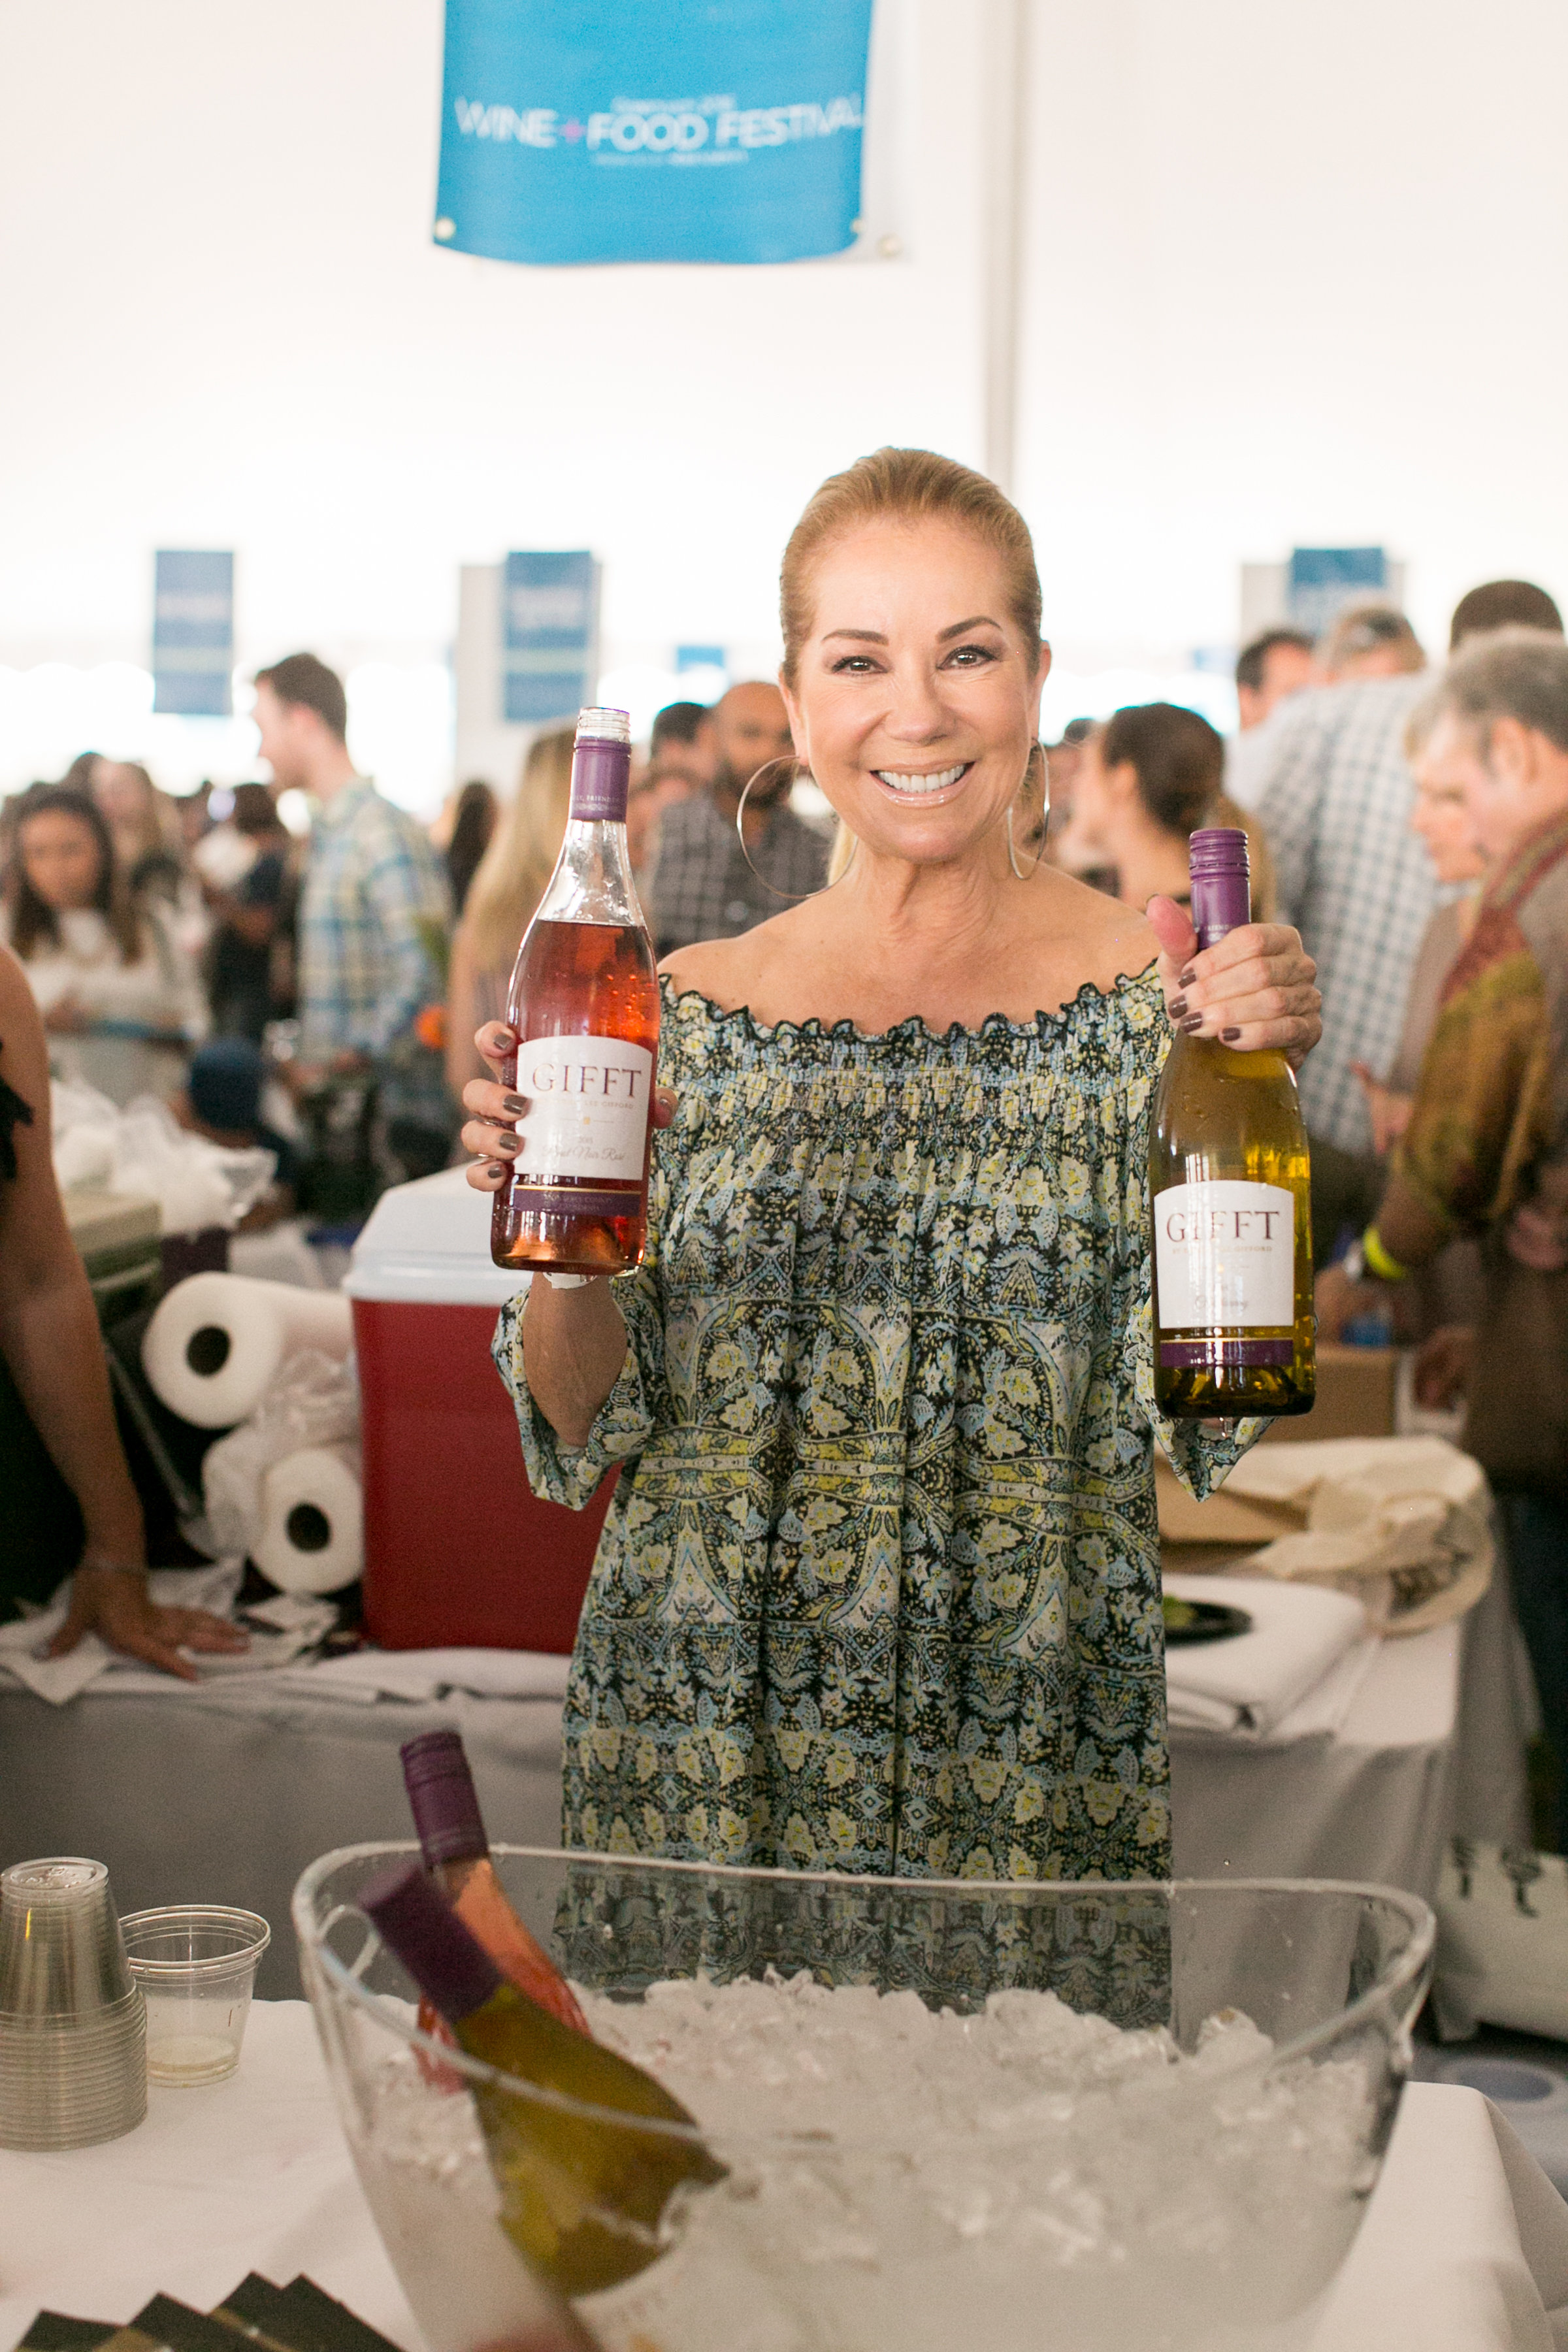 Kathie Lee with her Gifft Wines at the Greenwich Wine and Food Festival 2016 | CTEatsOut.com